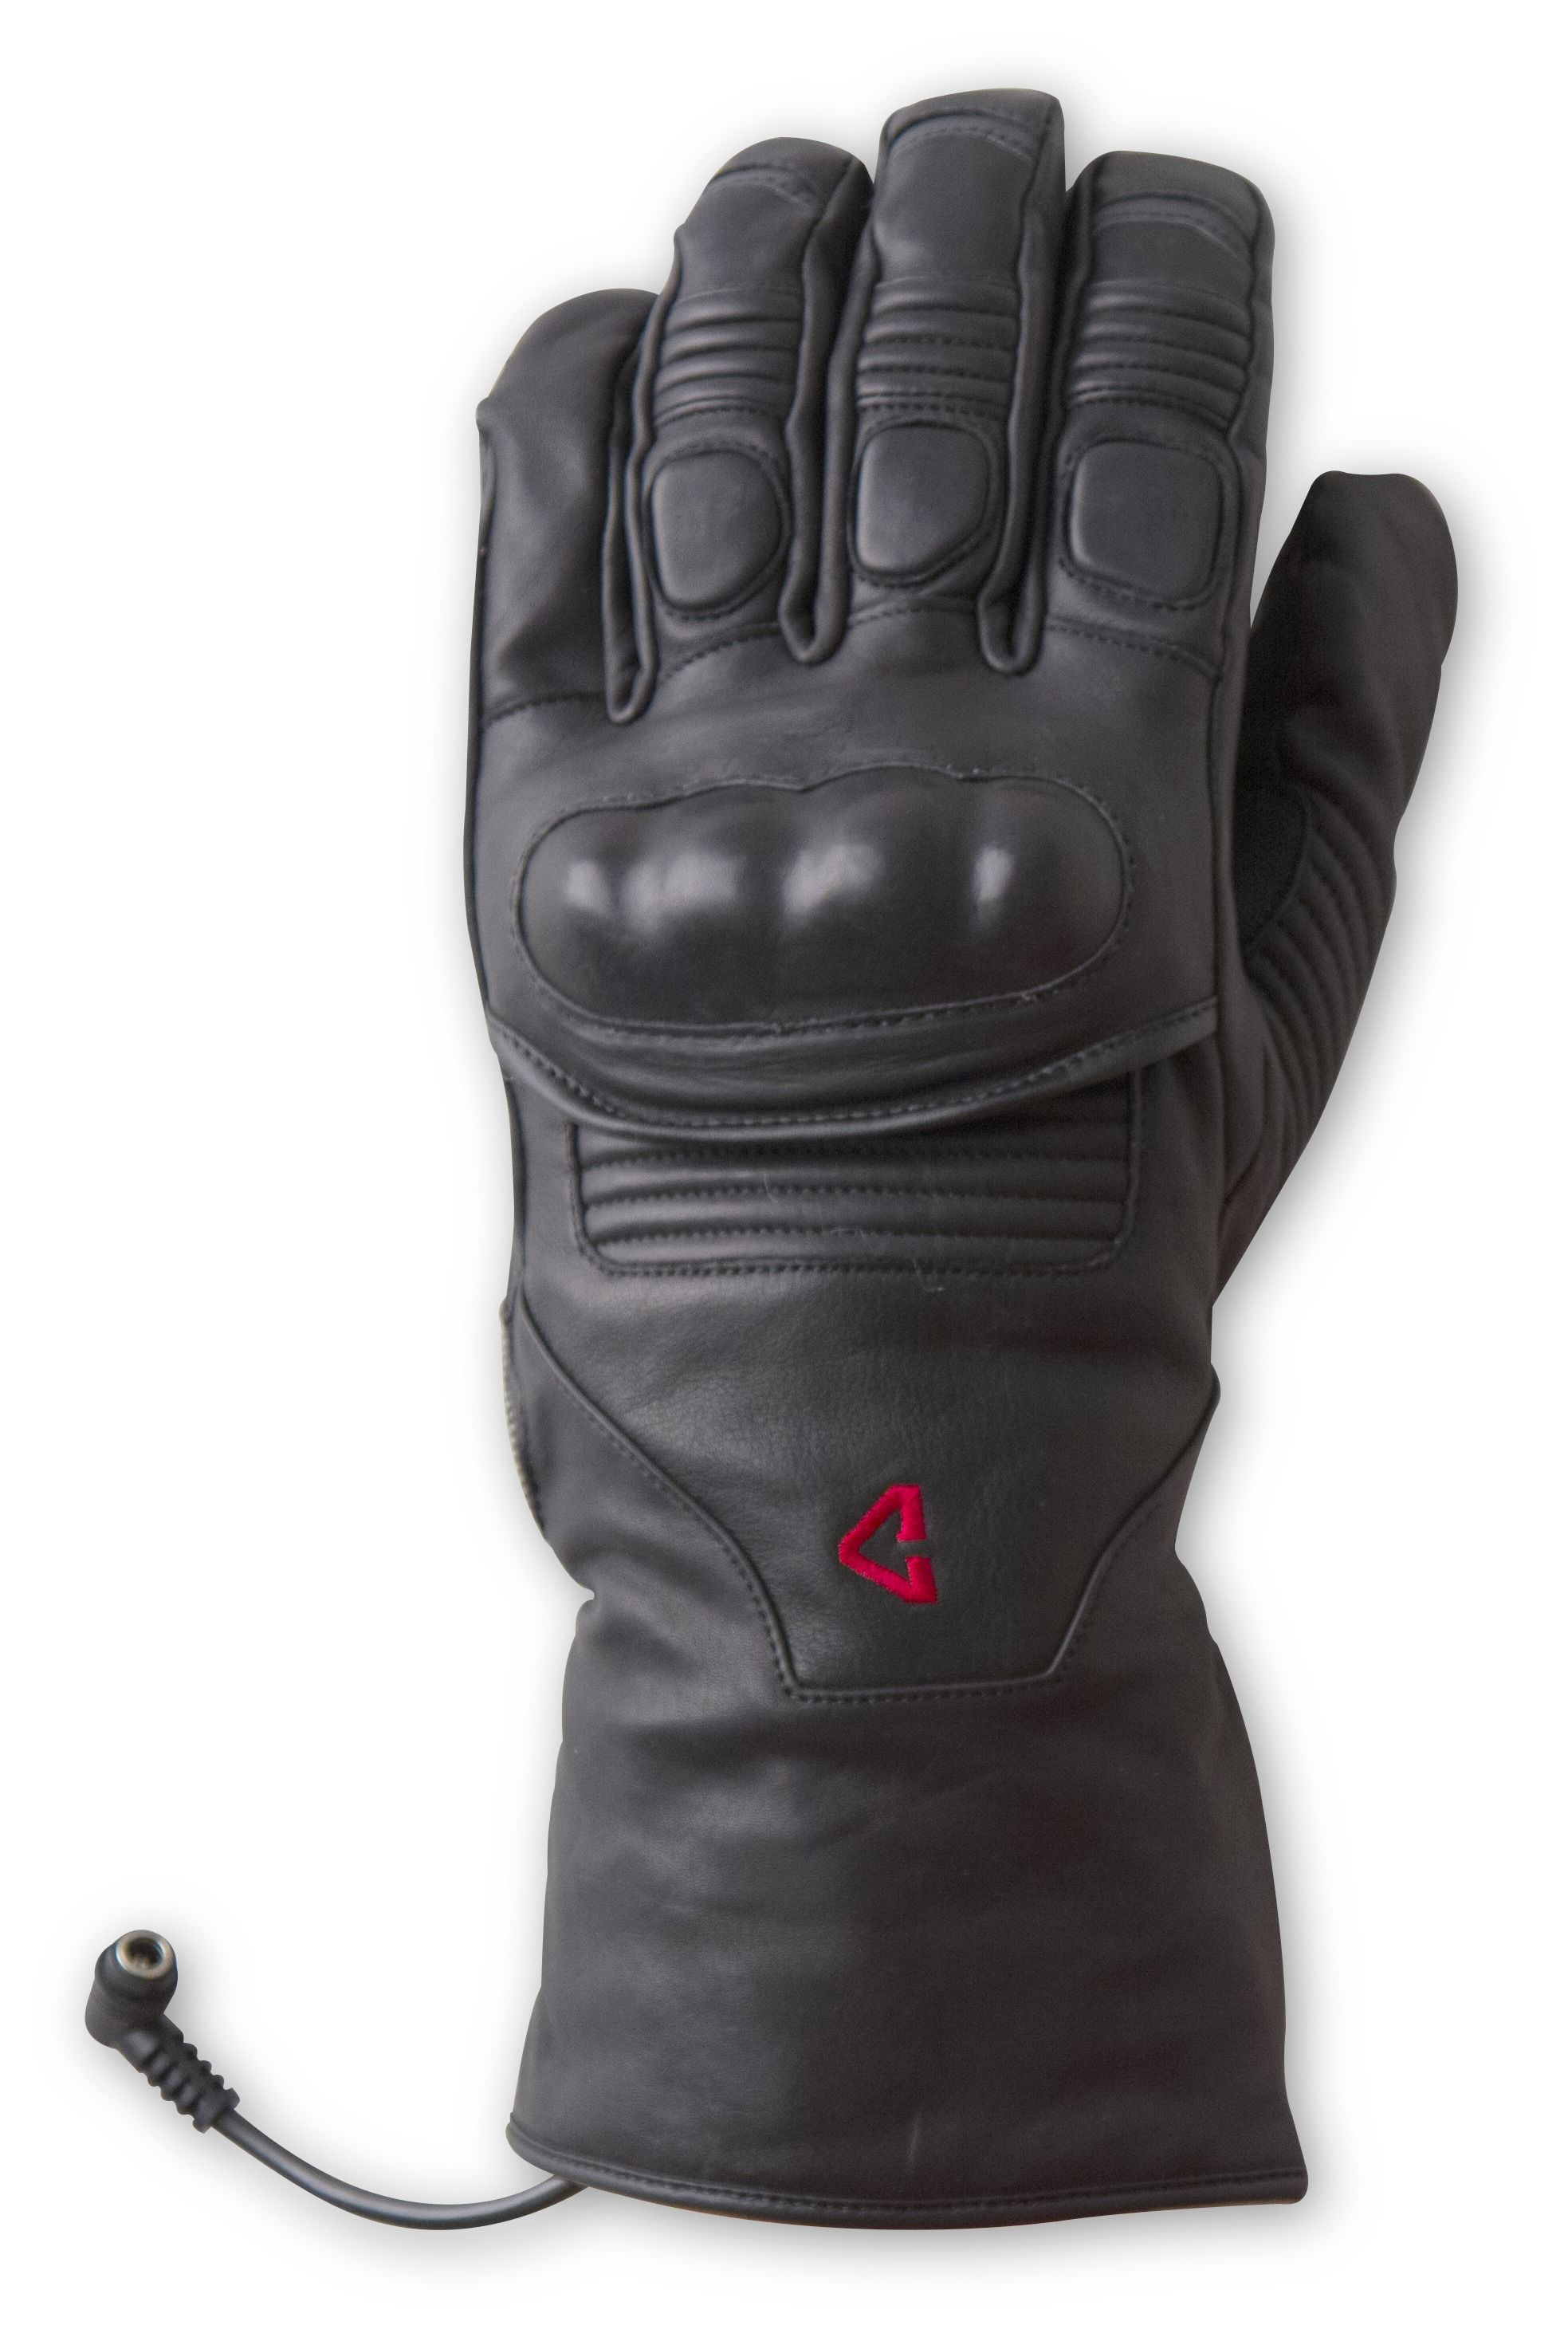 gyde by gerbing 12v vanguard gloves revzilla